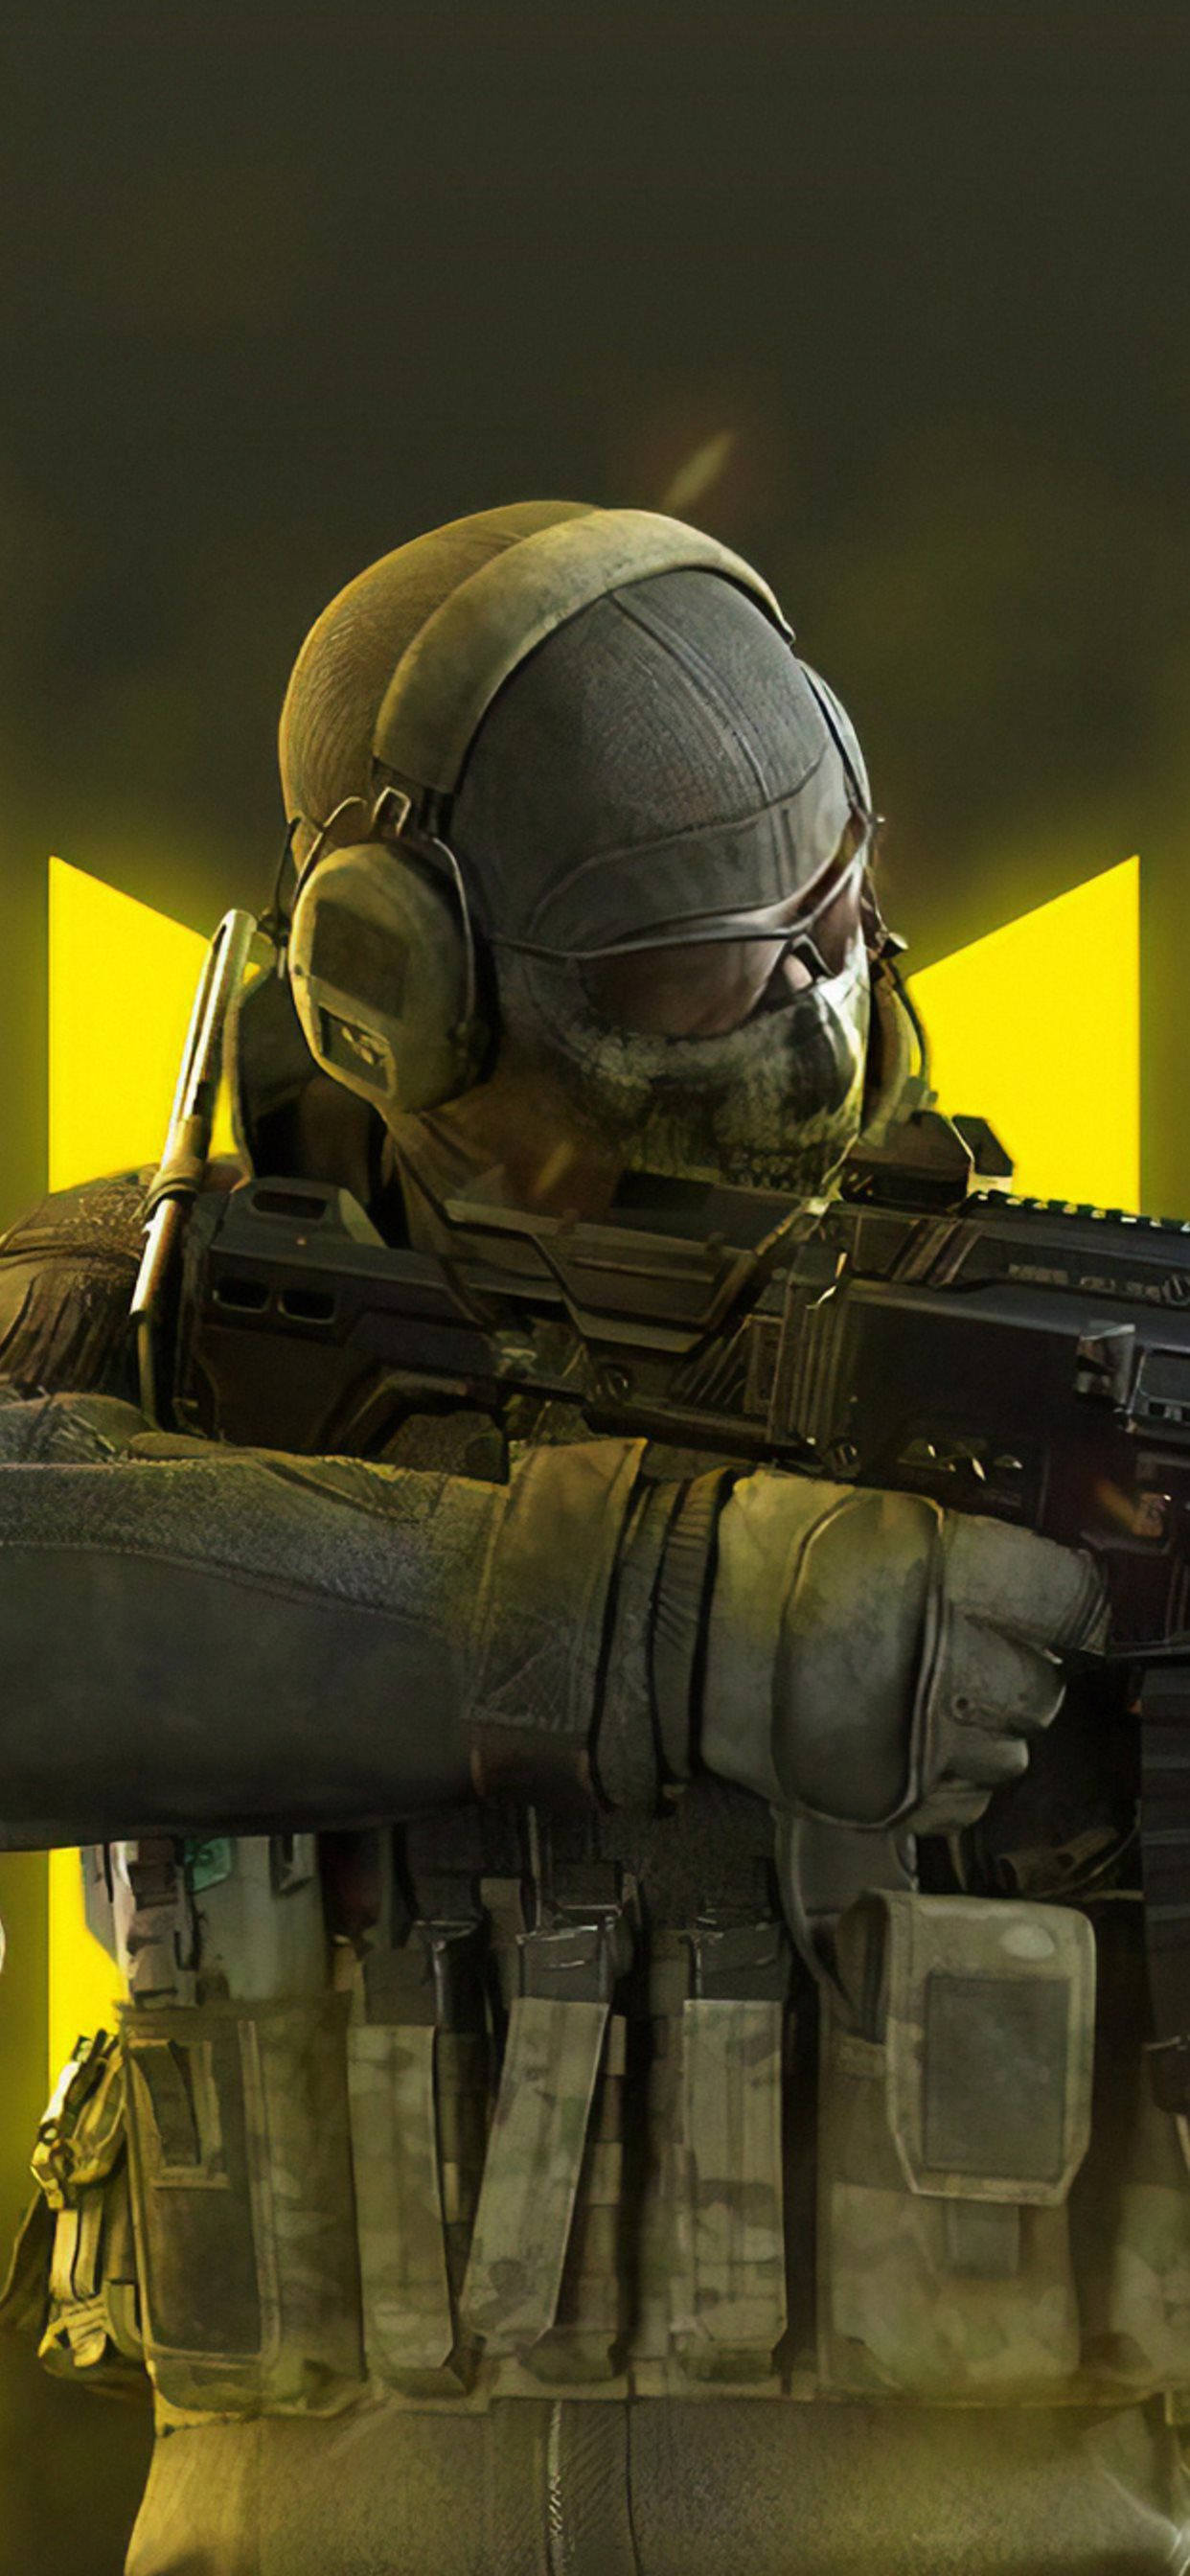 1242x2688 call of duty mobile 4k 2019 iPhone Wallpapers Free Download